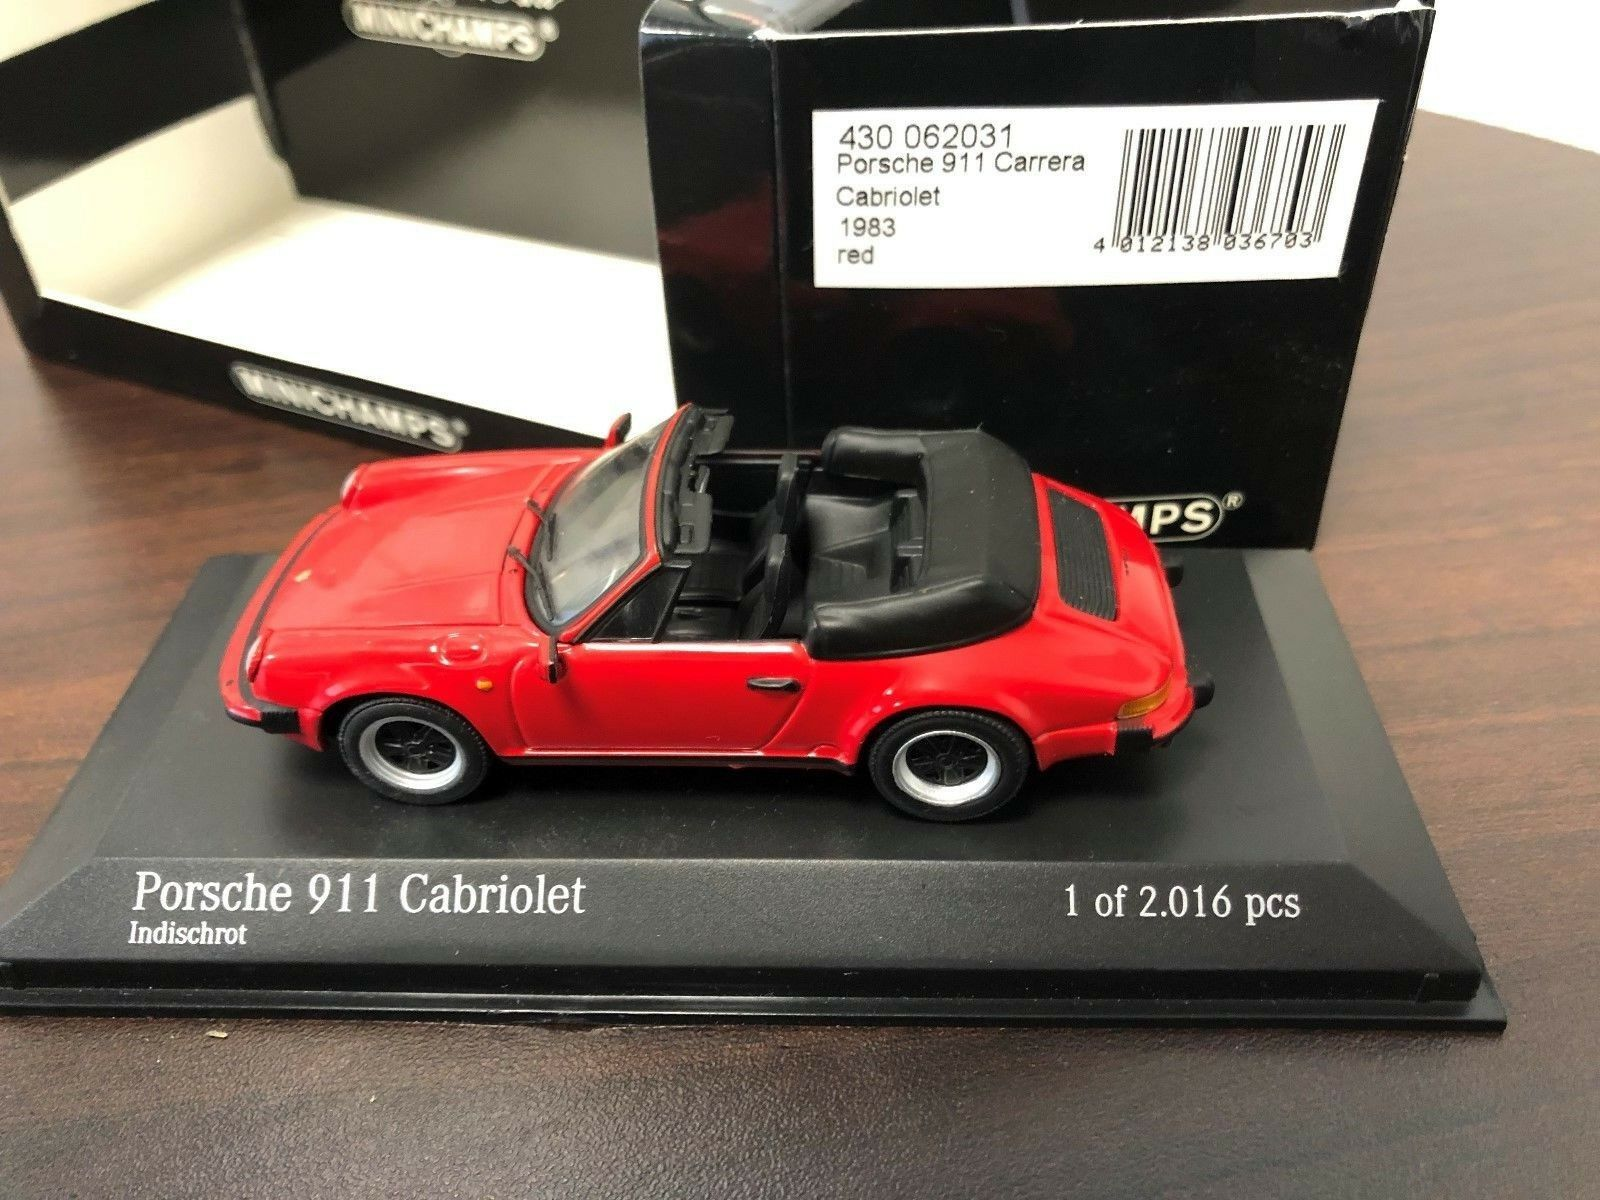 RARE 1983 PORSCHE 911 CARRERA CABRIOLET - MINICHAMPS 1 43  INDIA rouge 430 062031